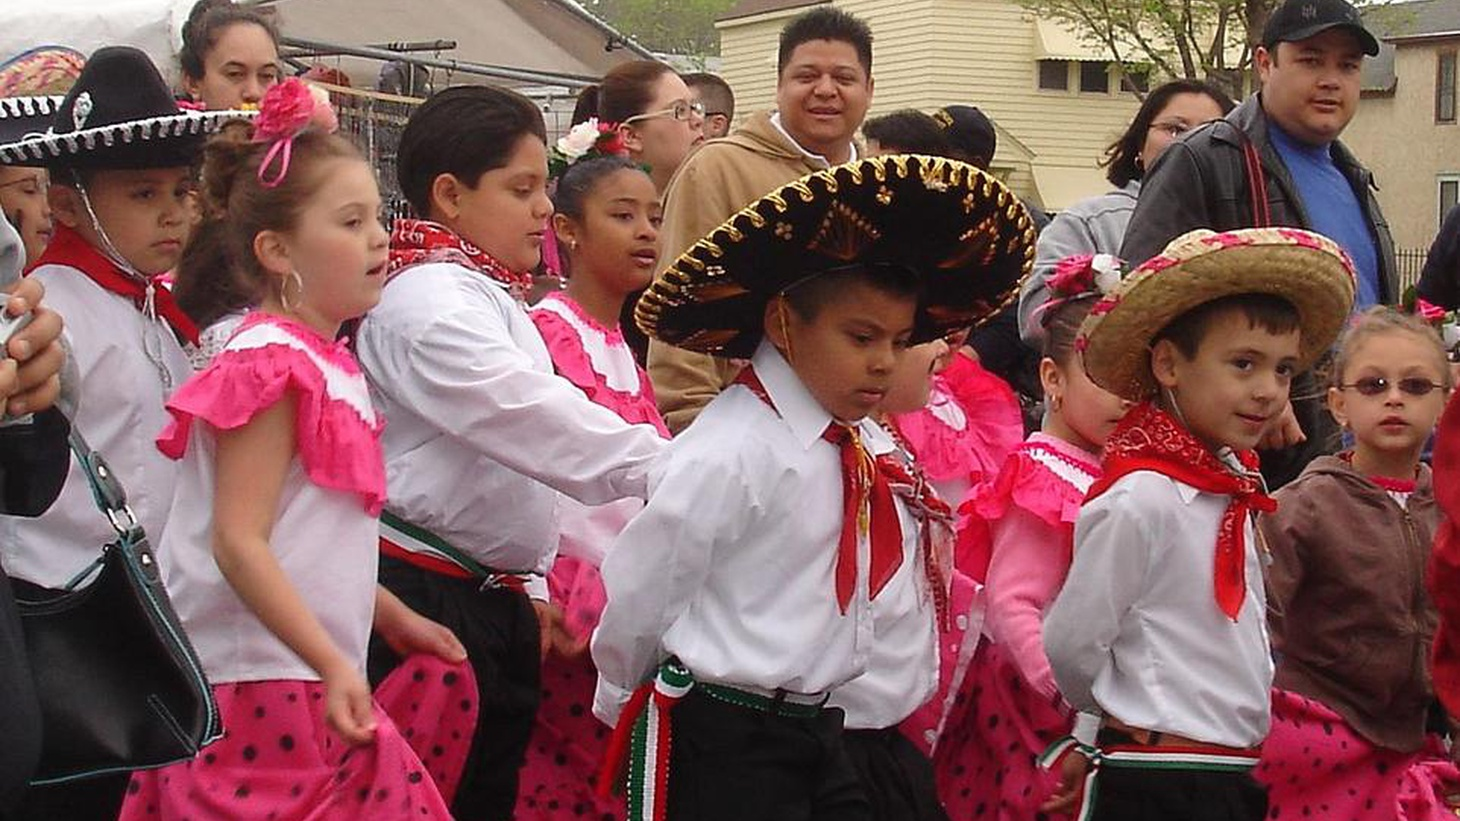 Saturday, Americans will celebrate Cinco de Mayo, with all things Mexican. About as Mexican as pastrami burritos, it reflects the assimilation of US and Mexican cultures.